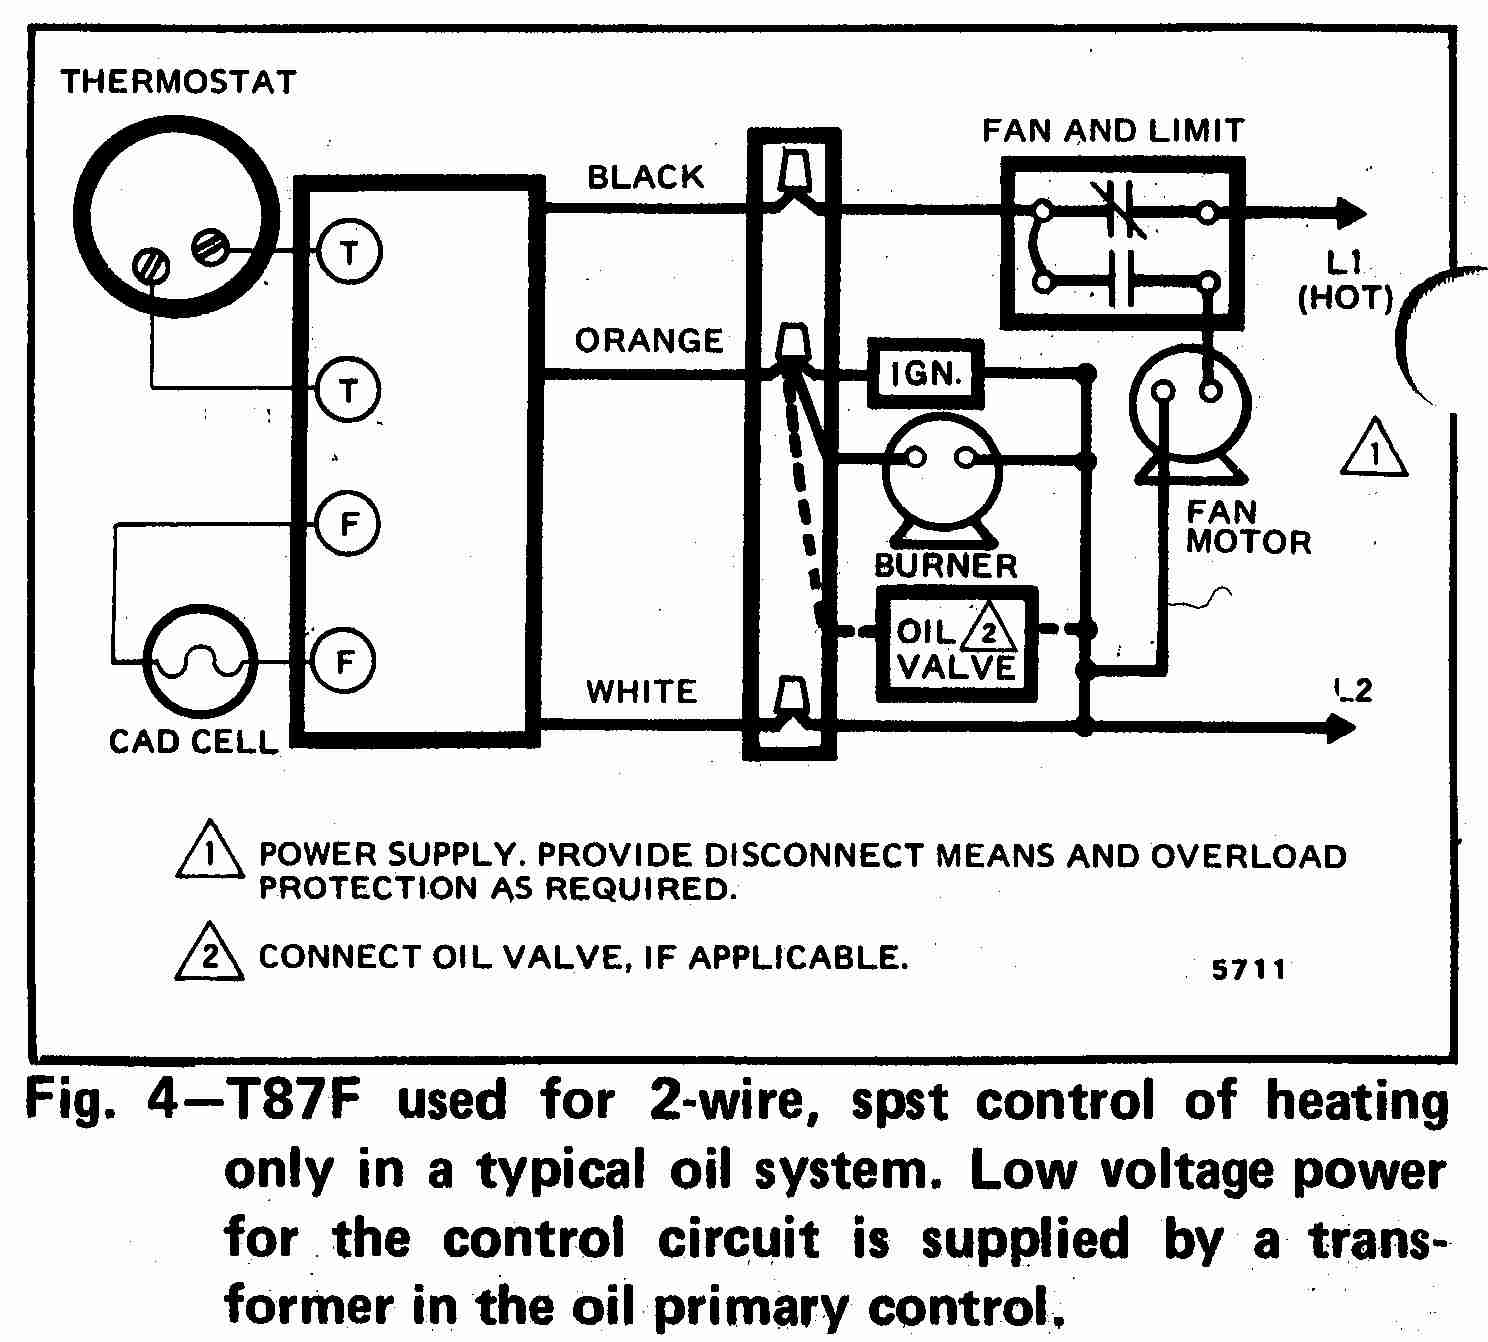 Heating System Wiring Di Schematic Diagrams Diagram For Surround Sound Hvac Hub Systems